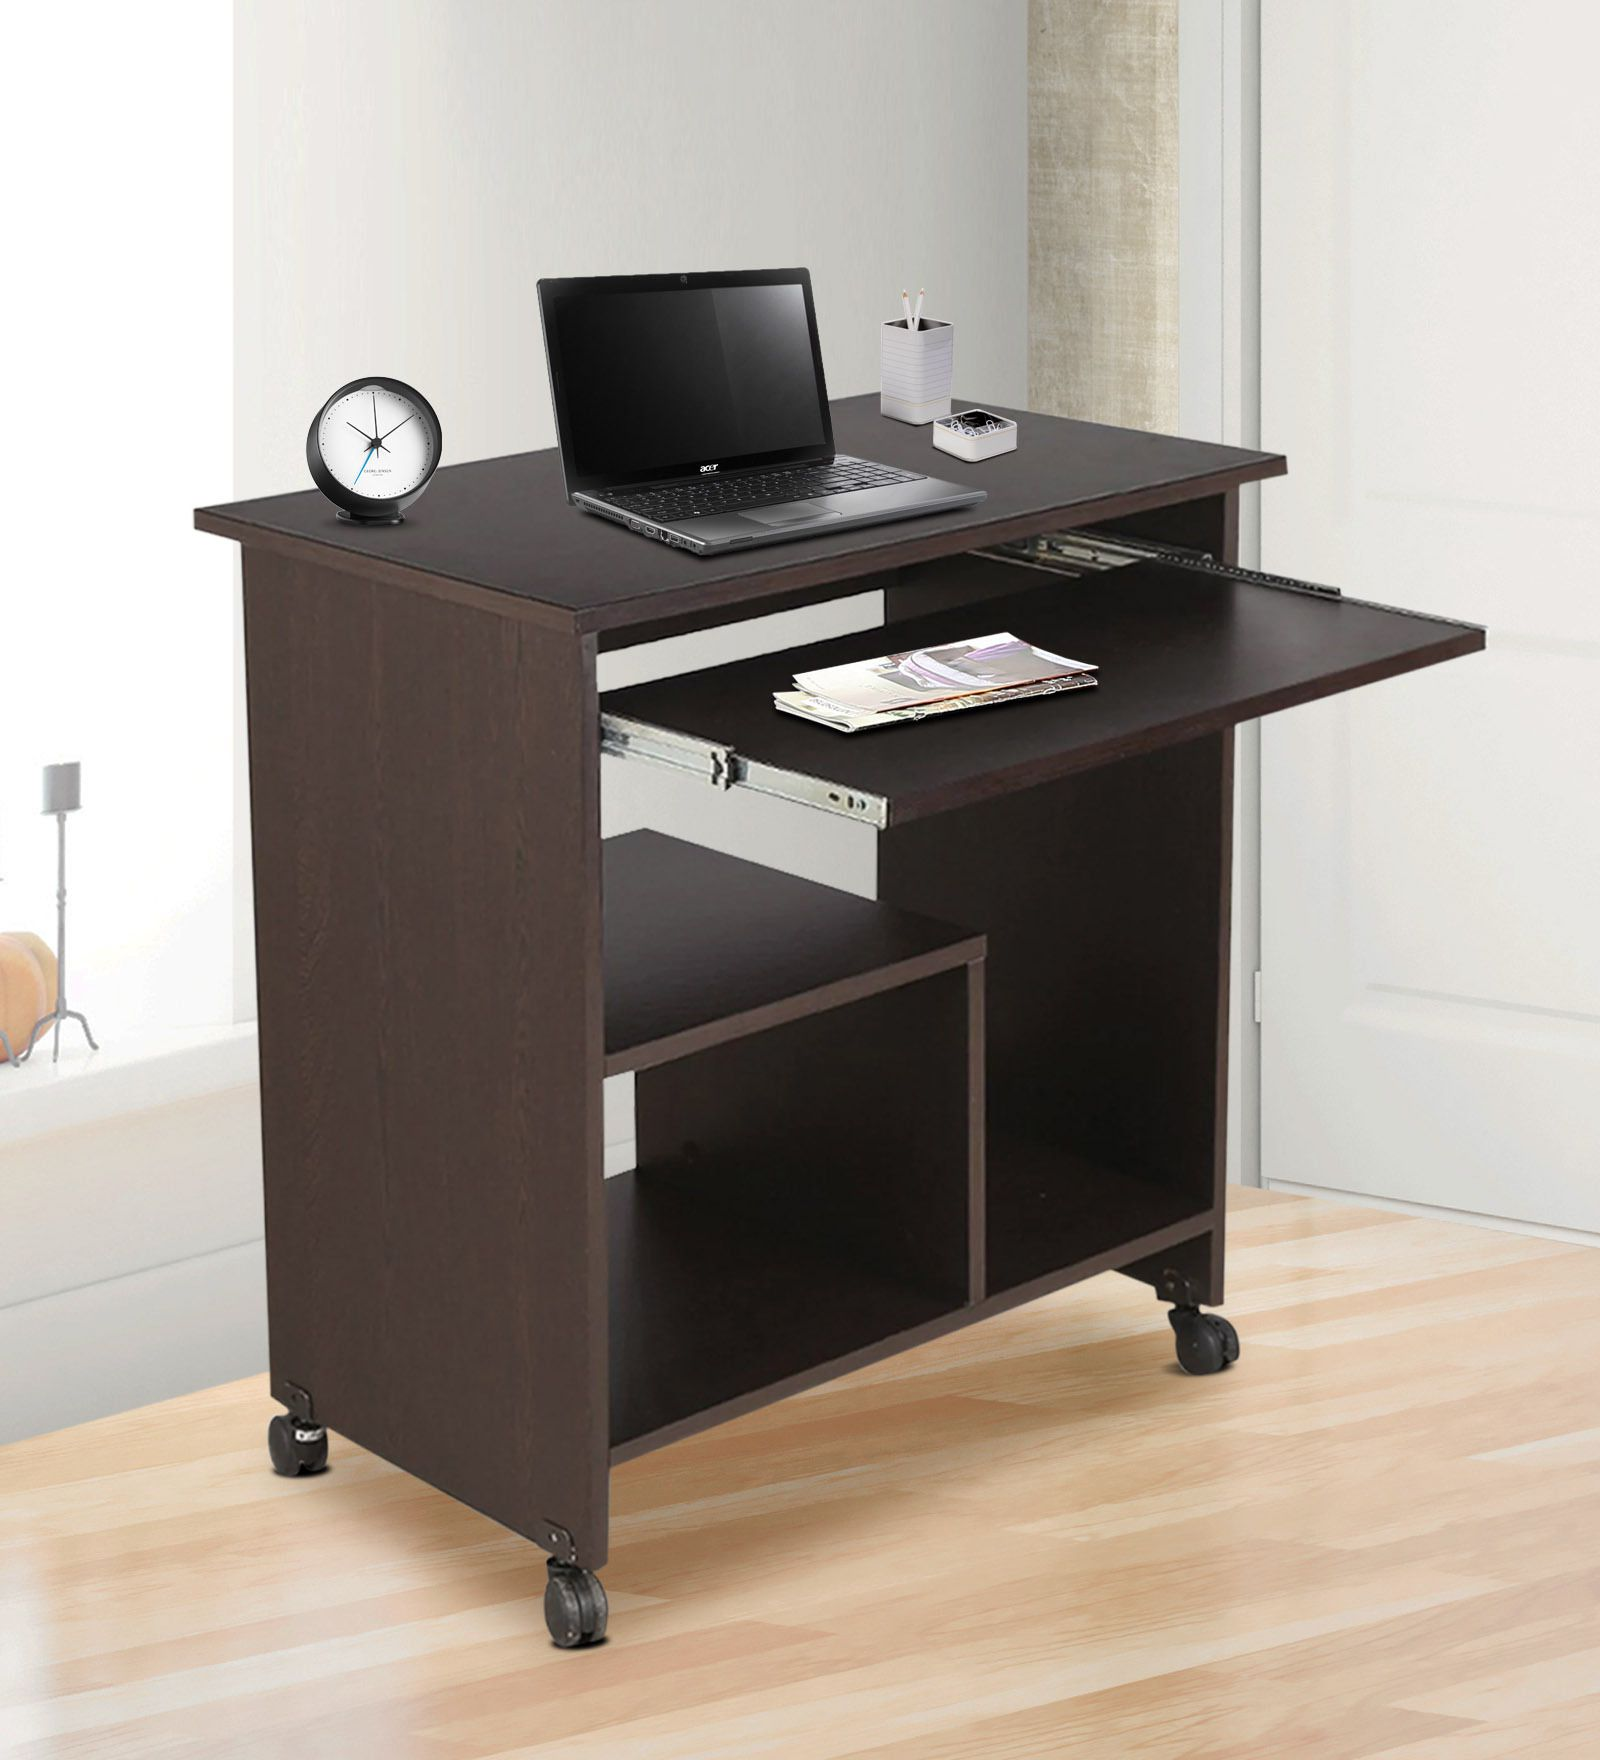 crystal furnitech engineered wood computer desk straight finish rh snapdeal com